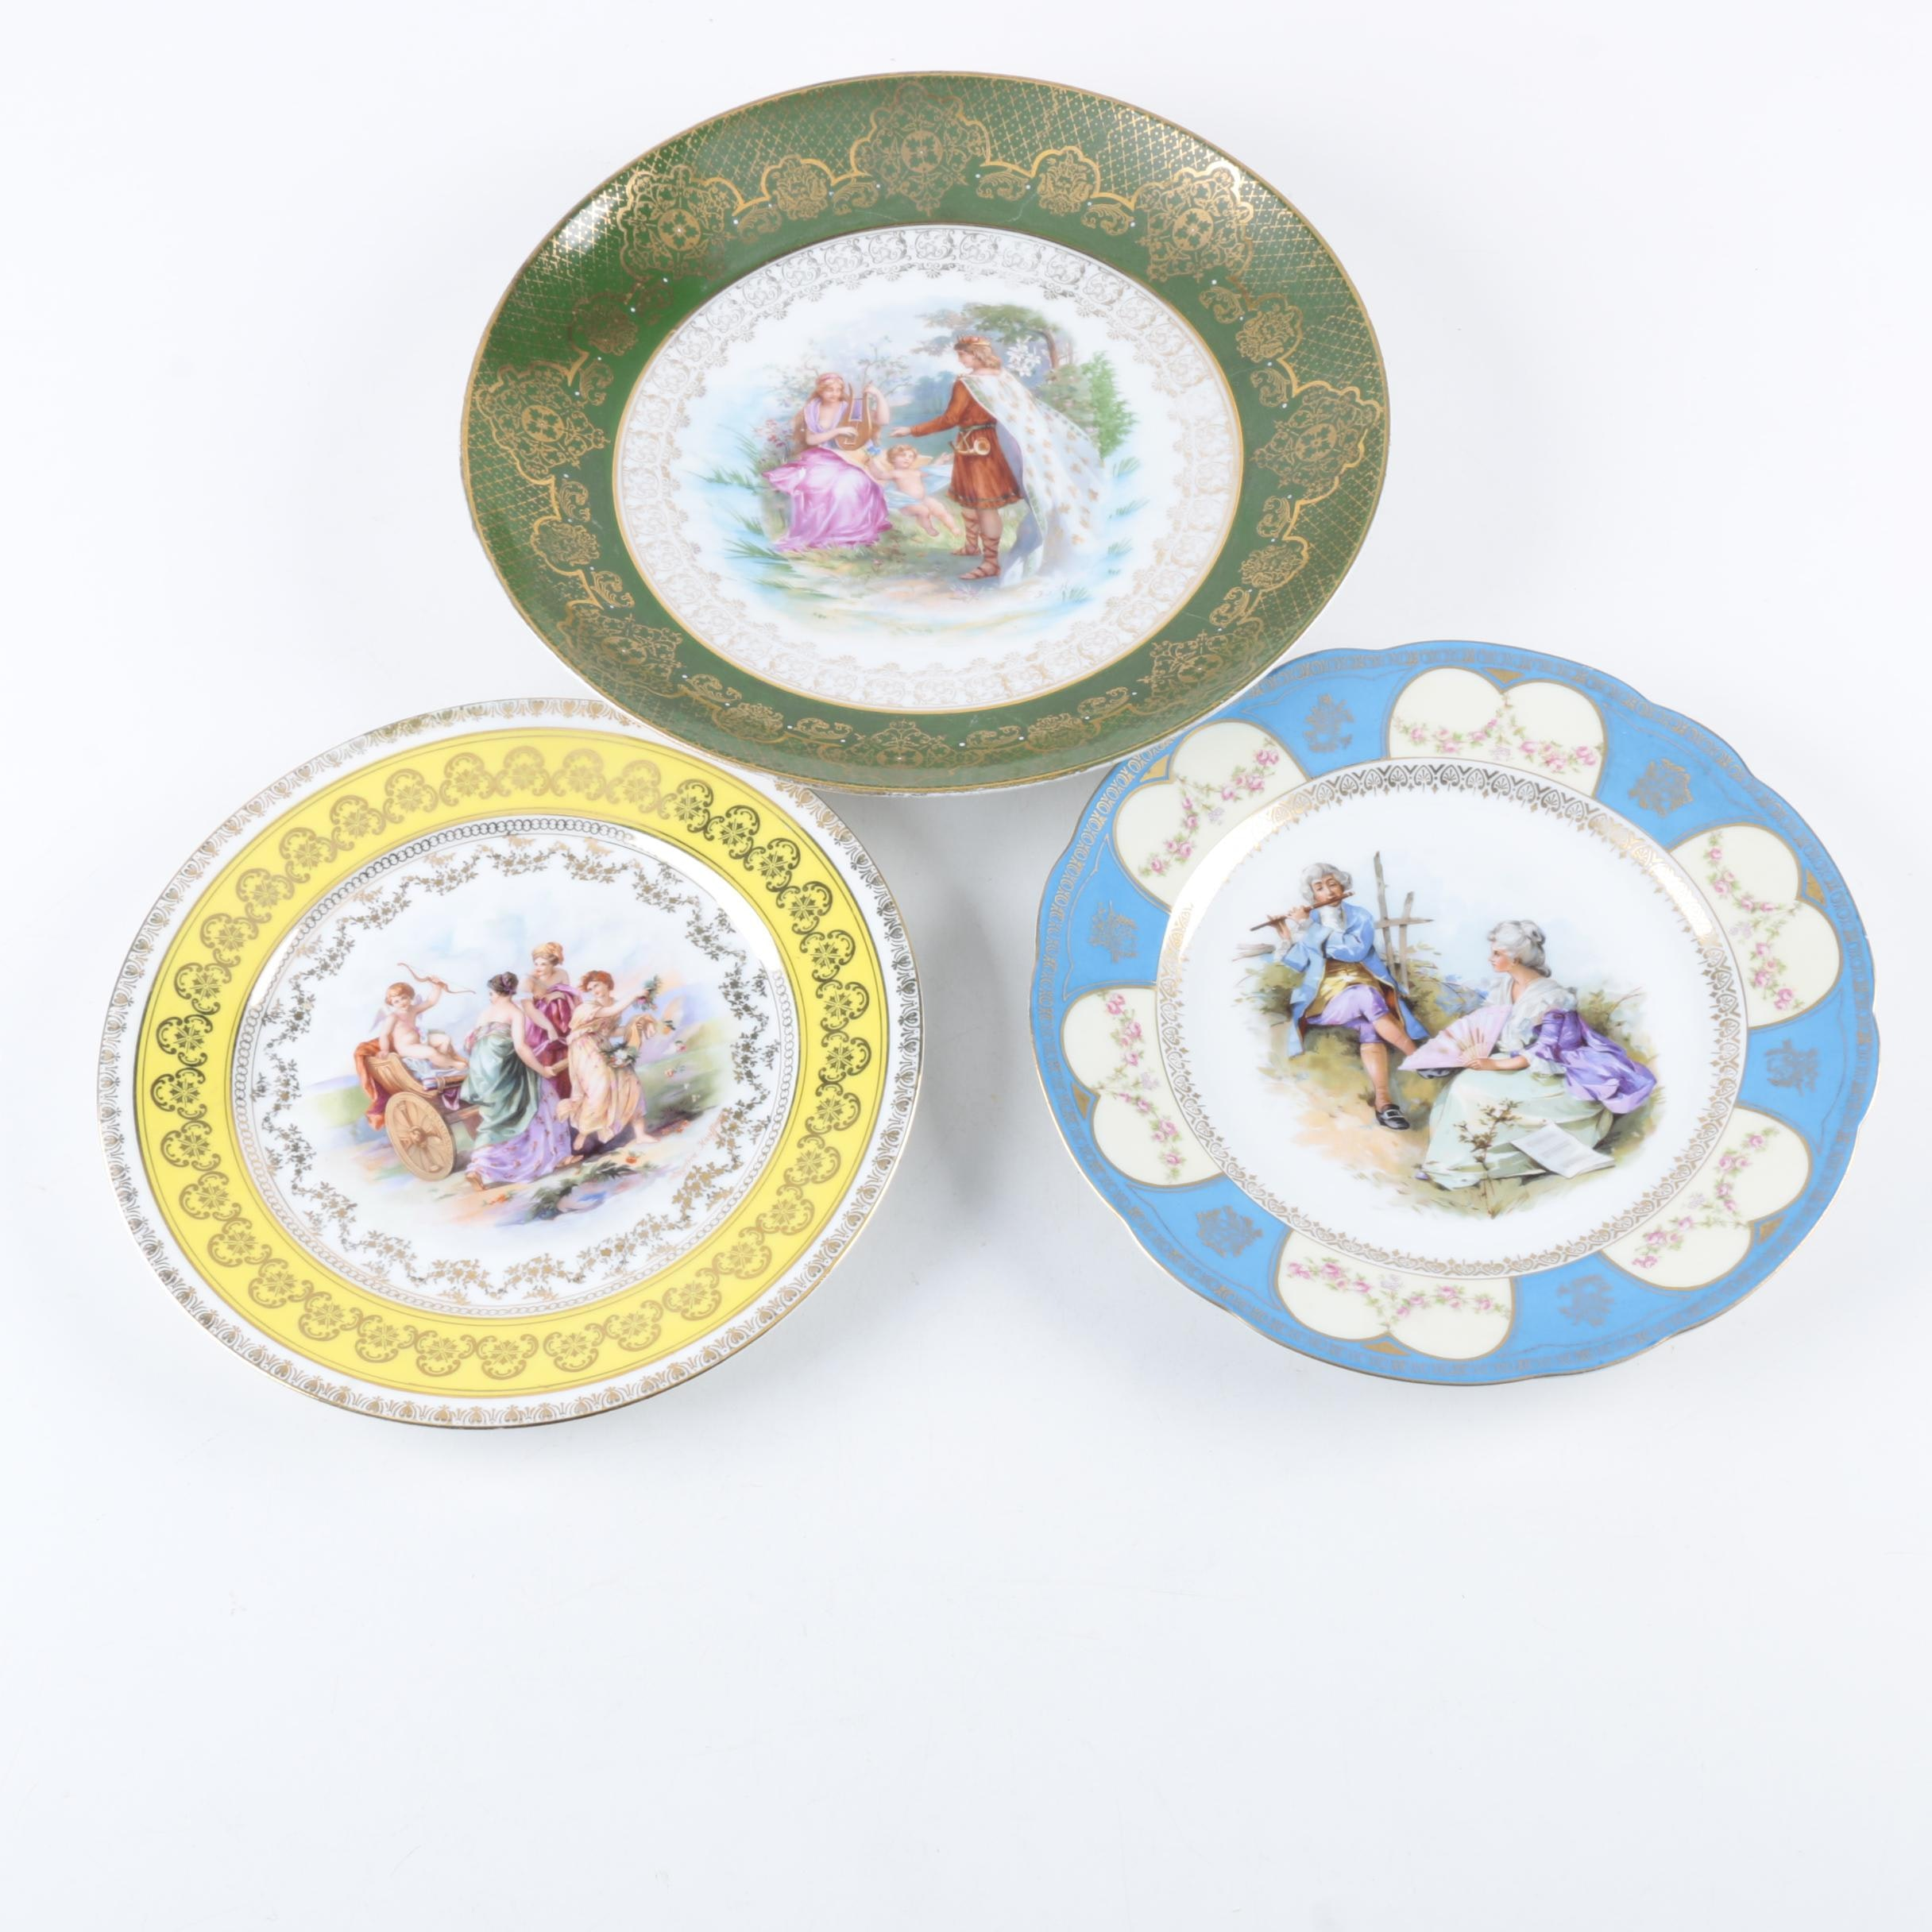 Vintage Austrian and German Porcelain Plates